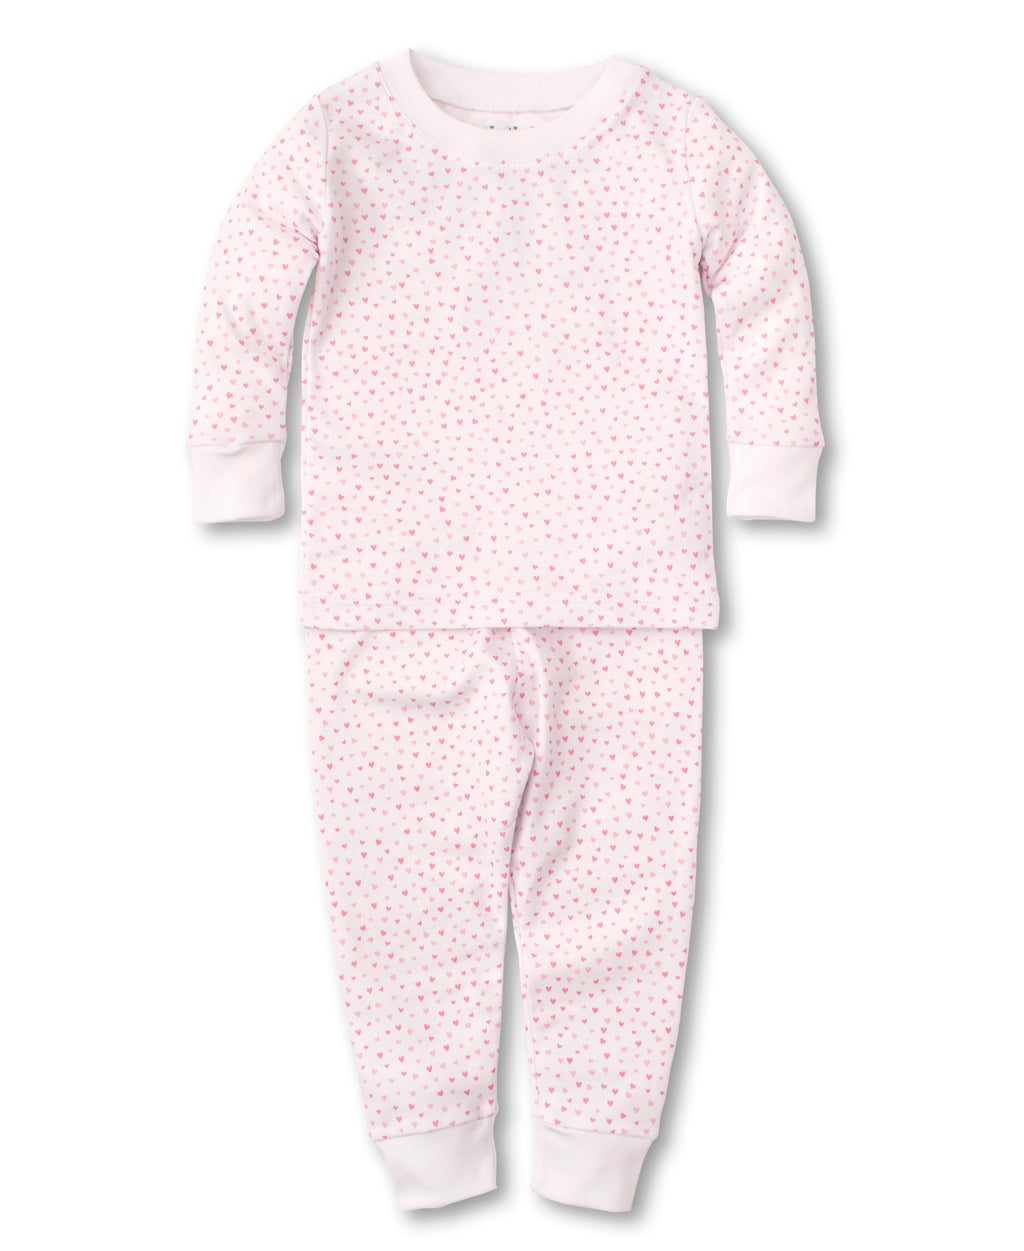 Kissy Sweethearts White Toddler Pajama Set